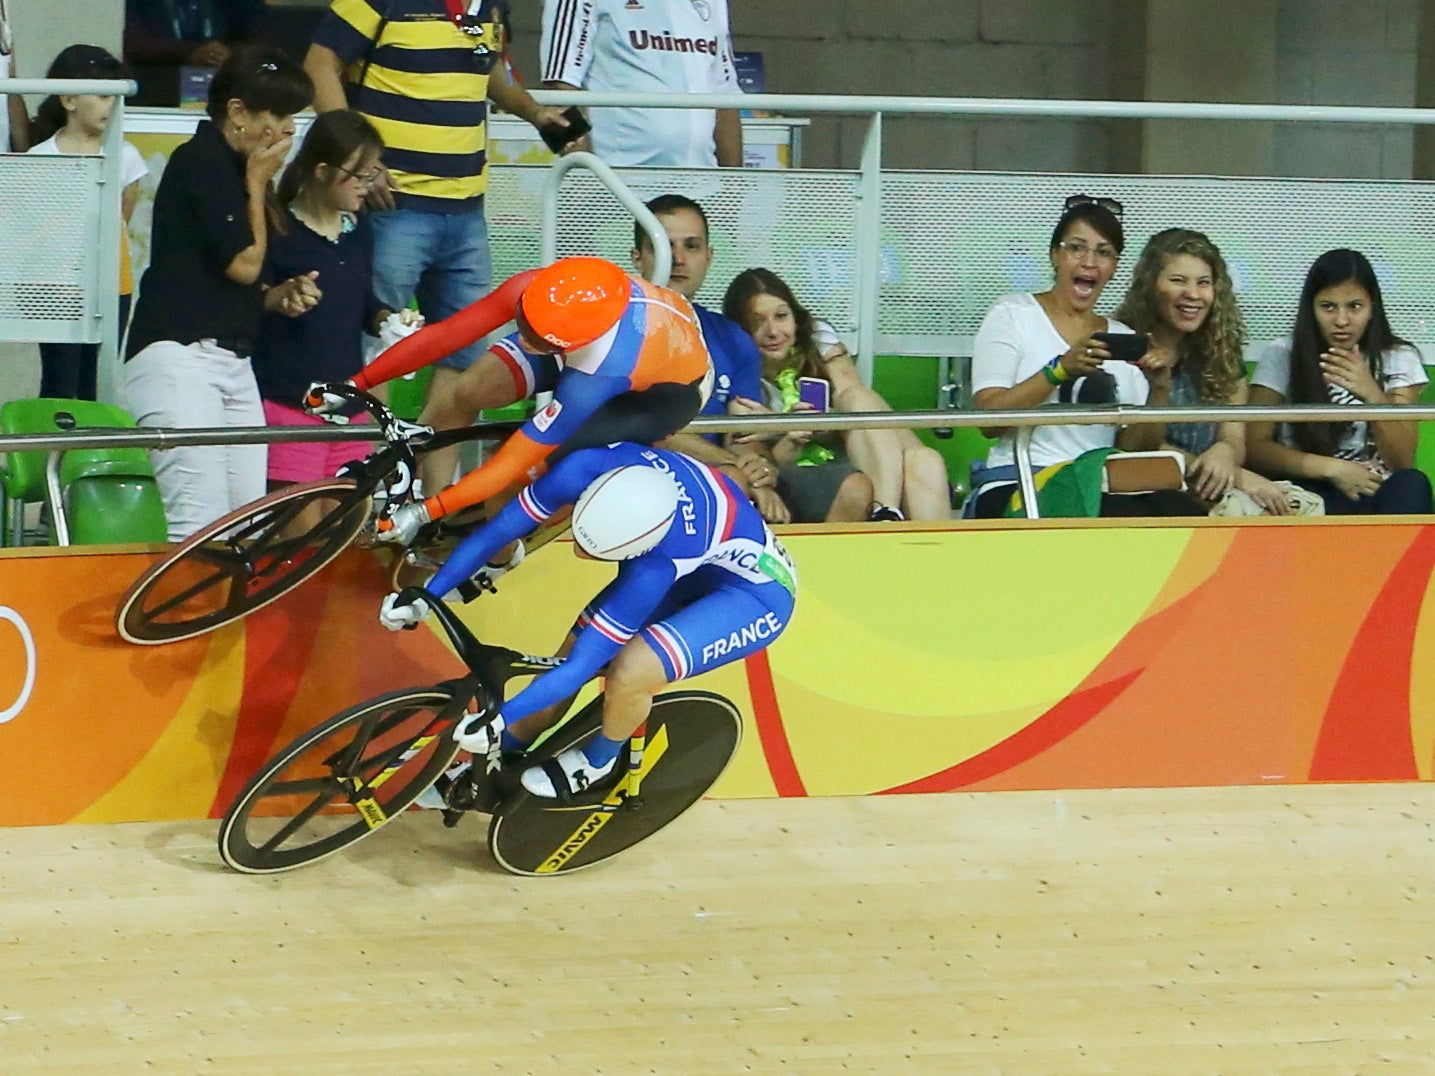 Rio 2016: Dutch cyclist Laurine van Riessen prevents nasty collision by riding up side of track during keirin